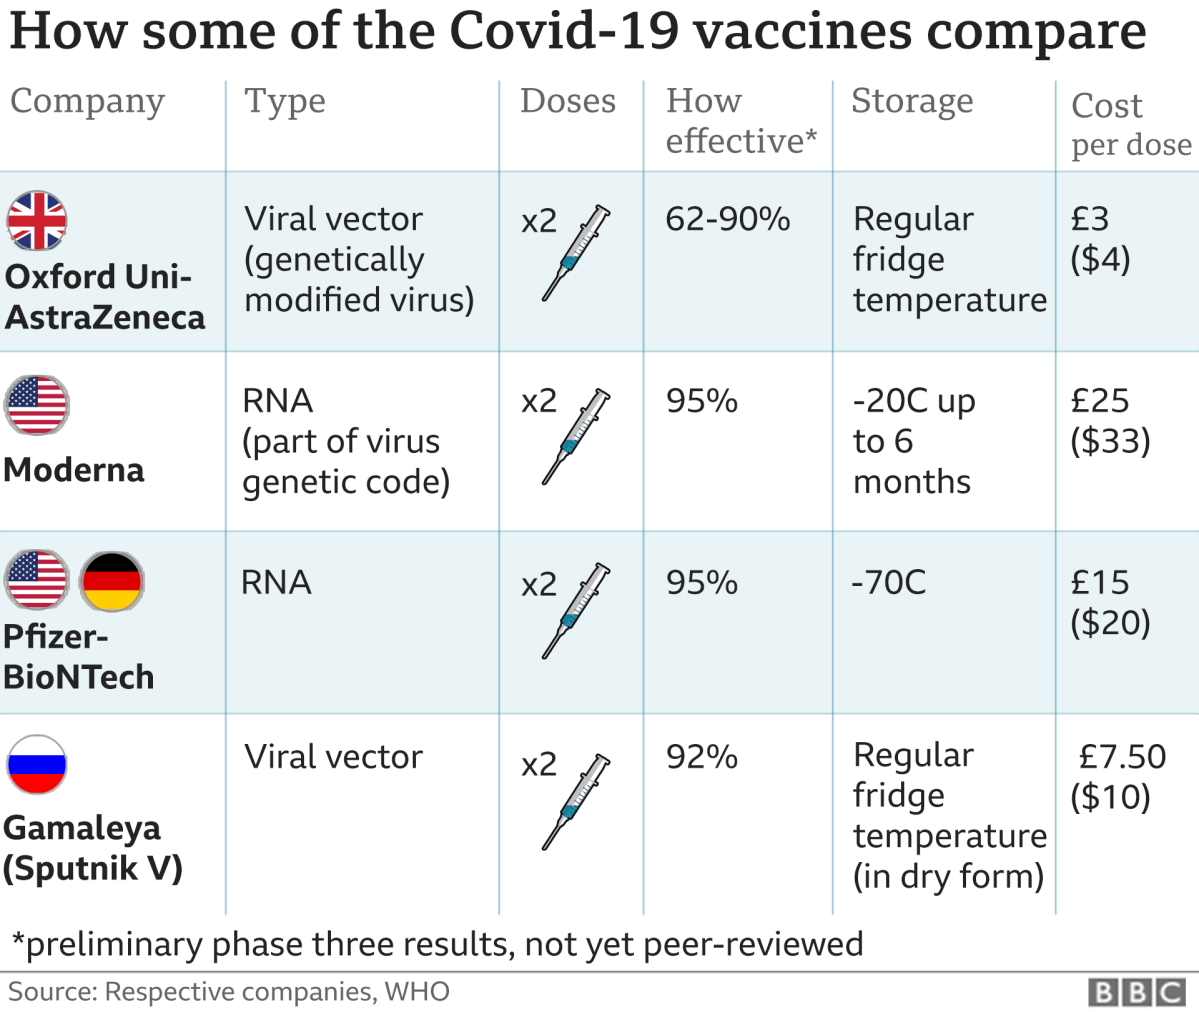 Covid vaccine: Moderna seeks approval in US and Europe - BBC News